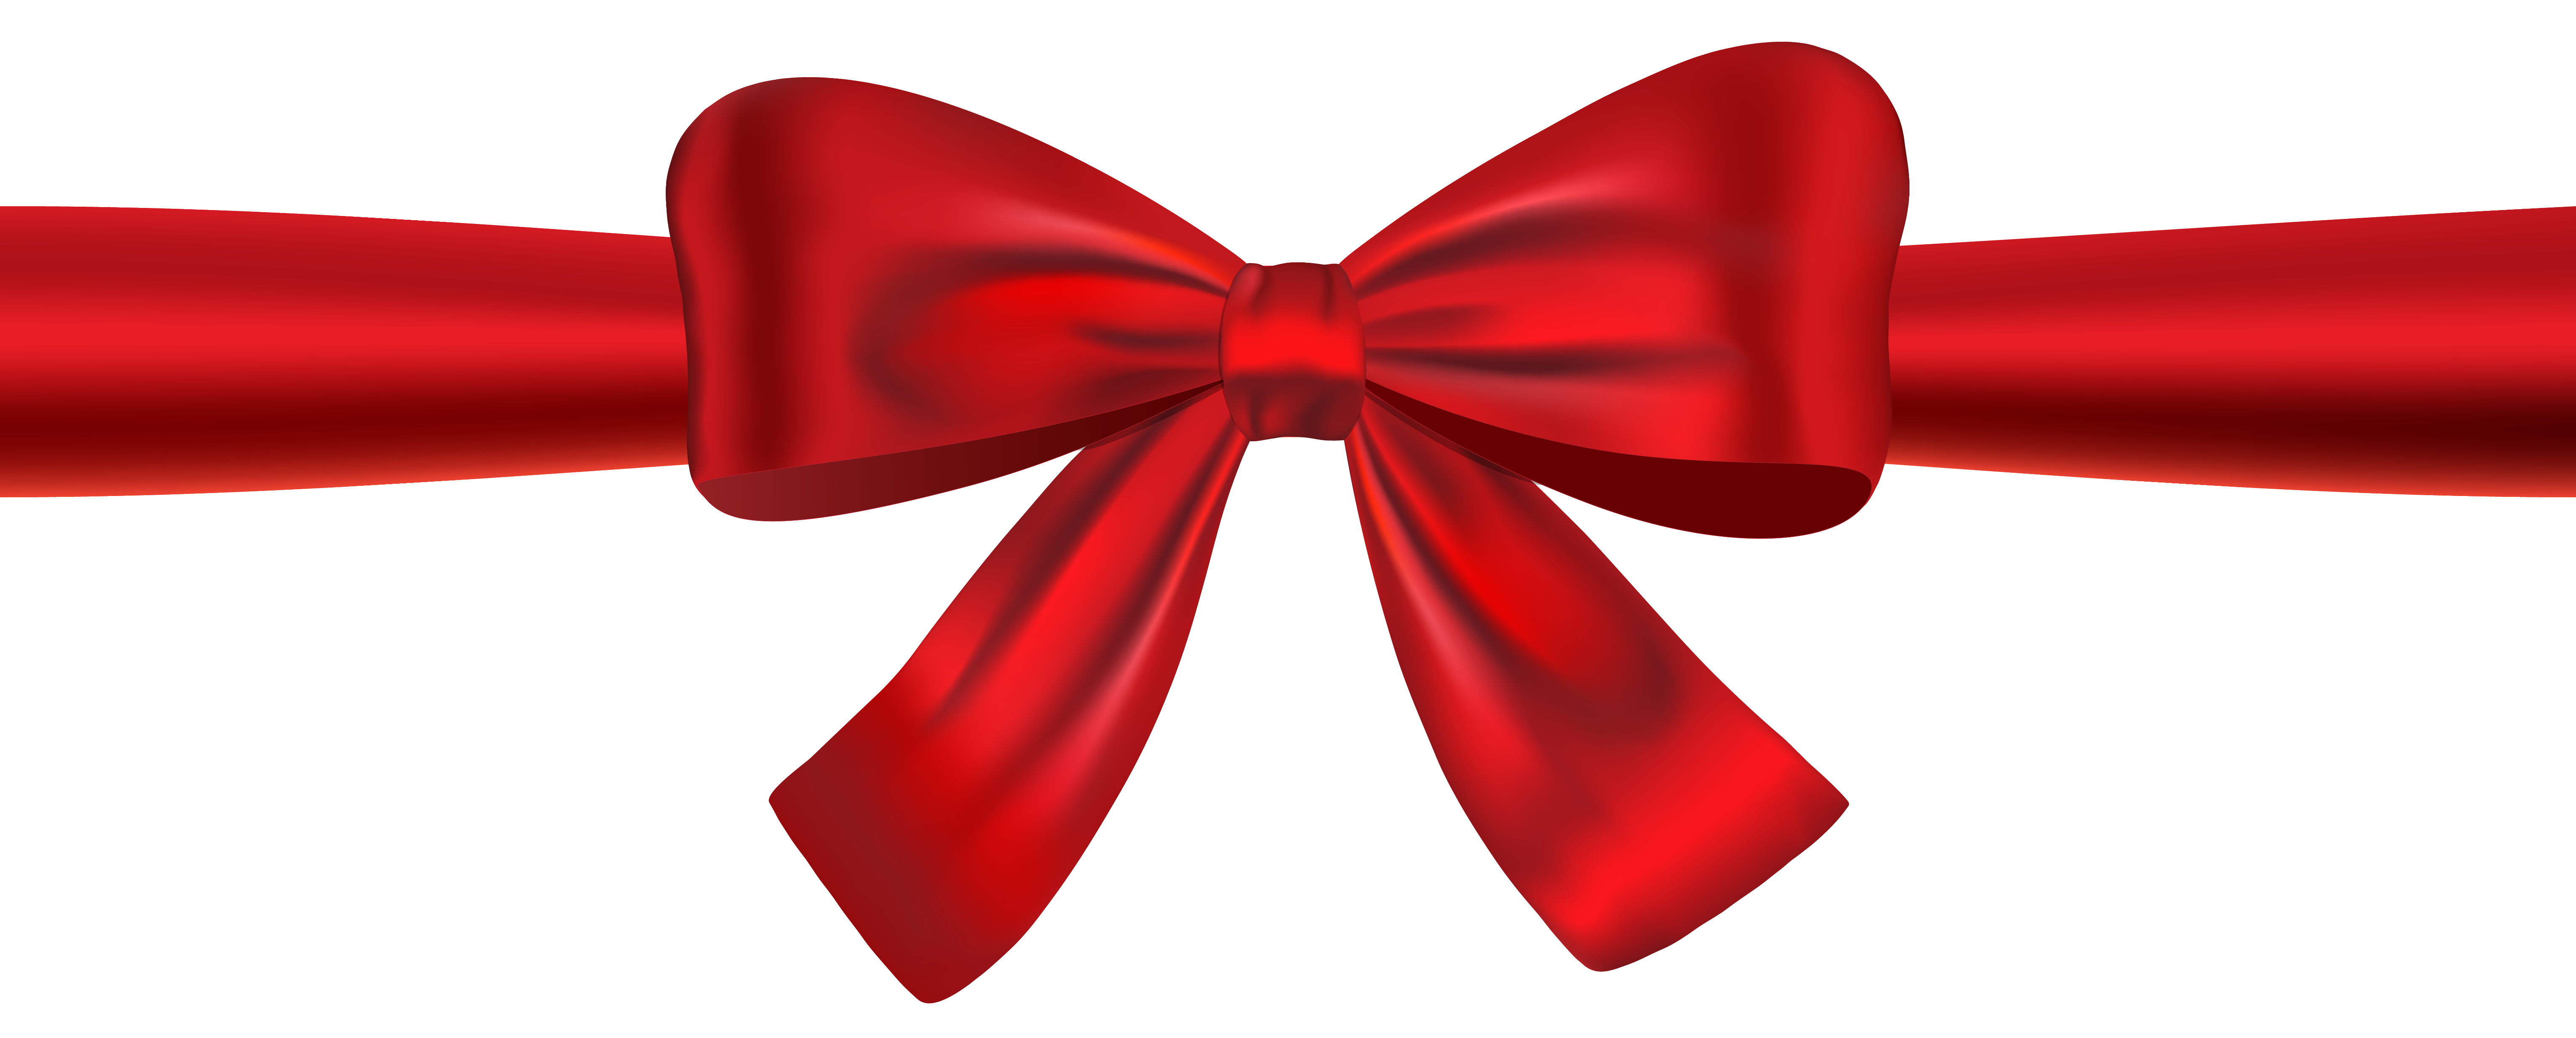 6110x2461 Ribbon Clipart Red Bow